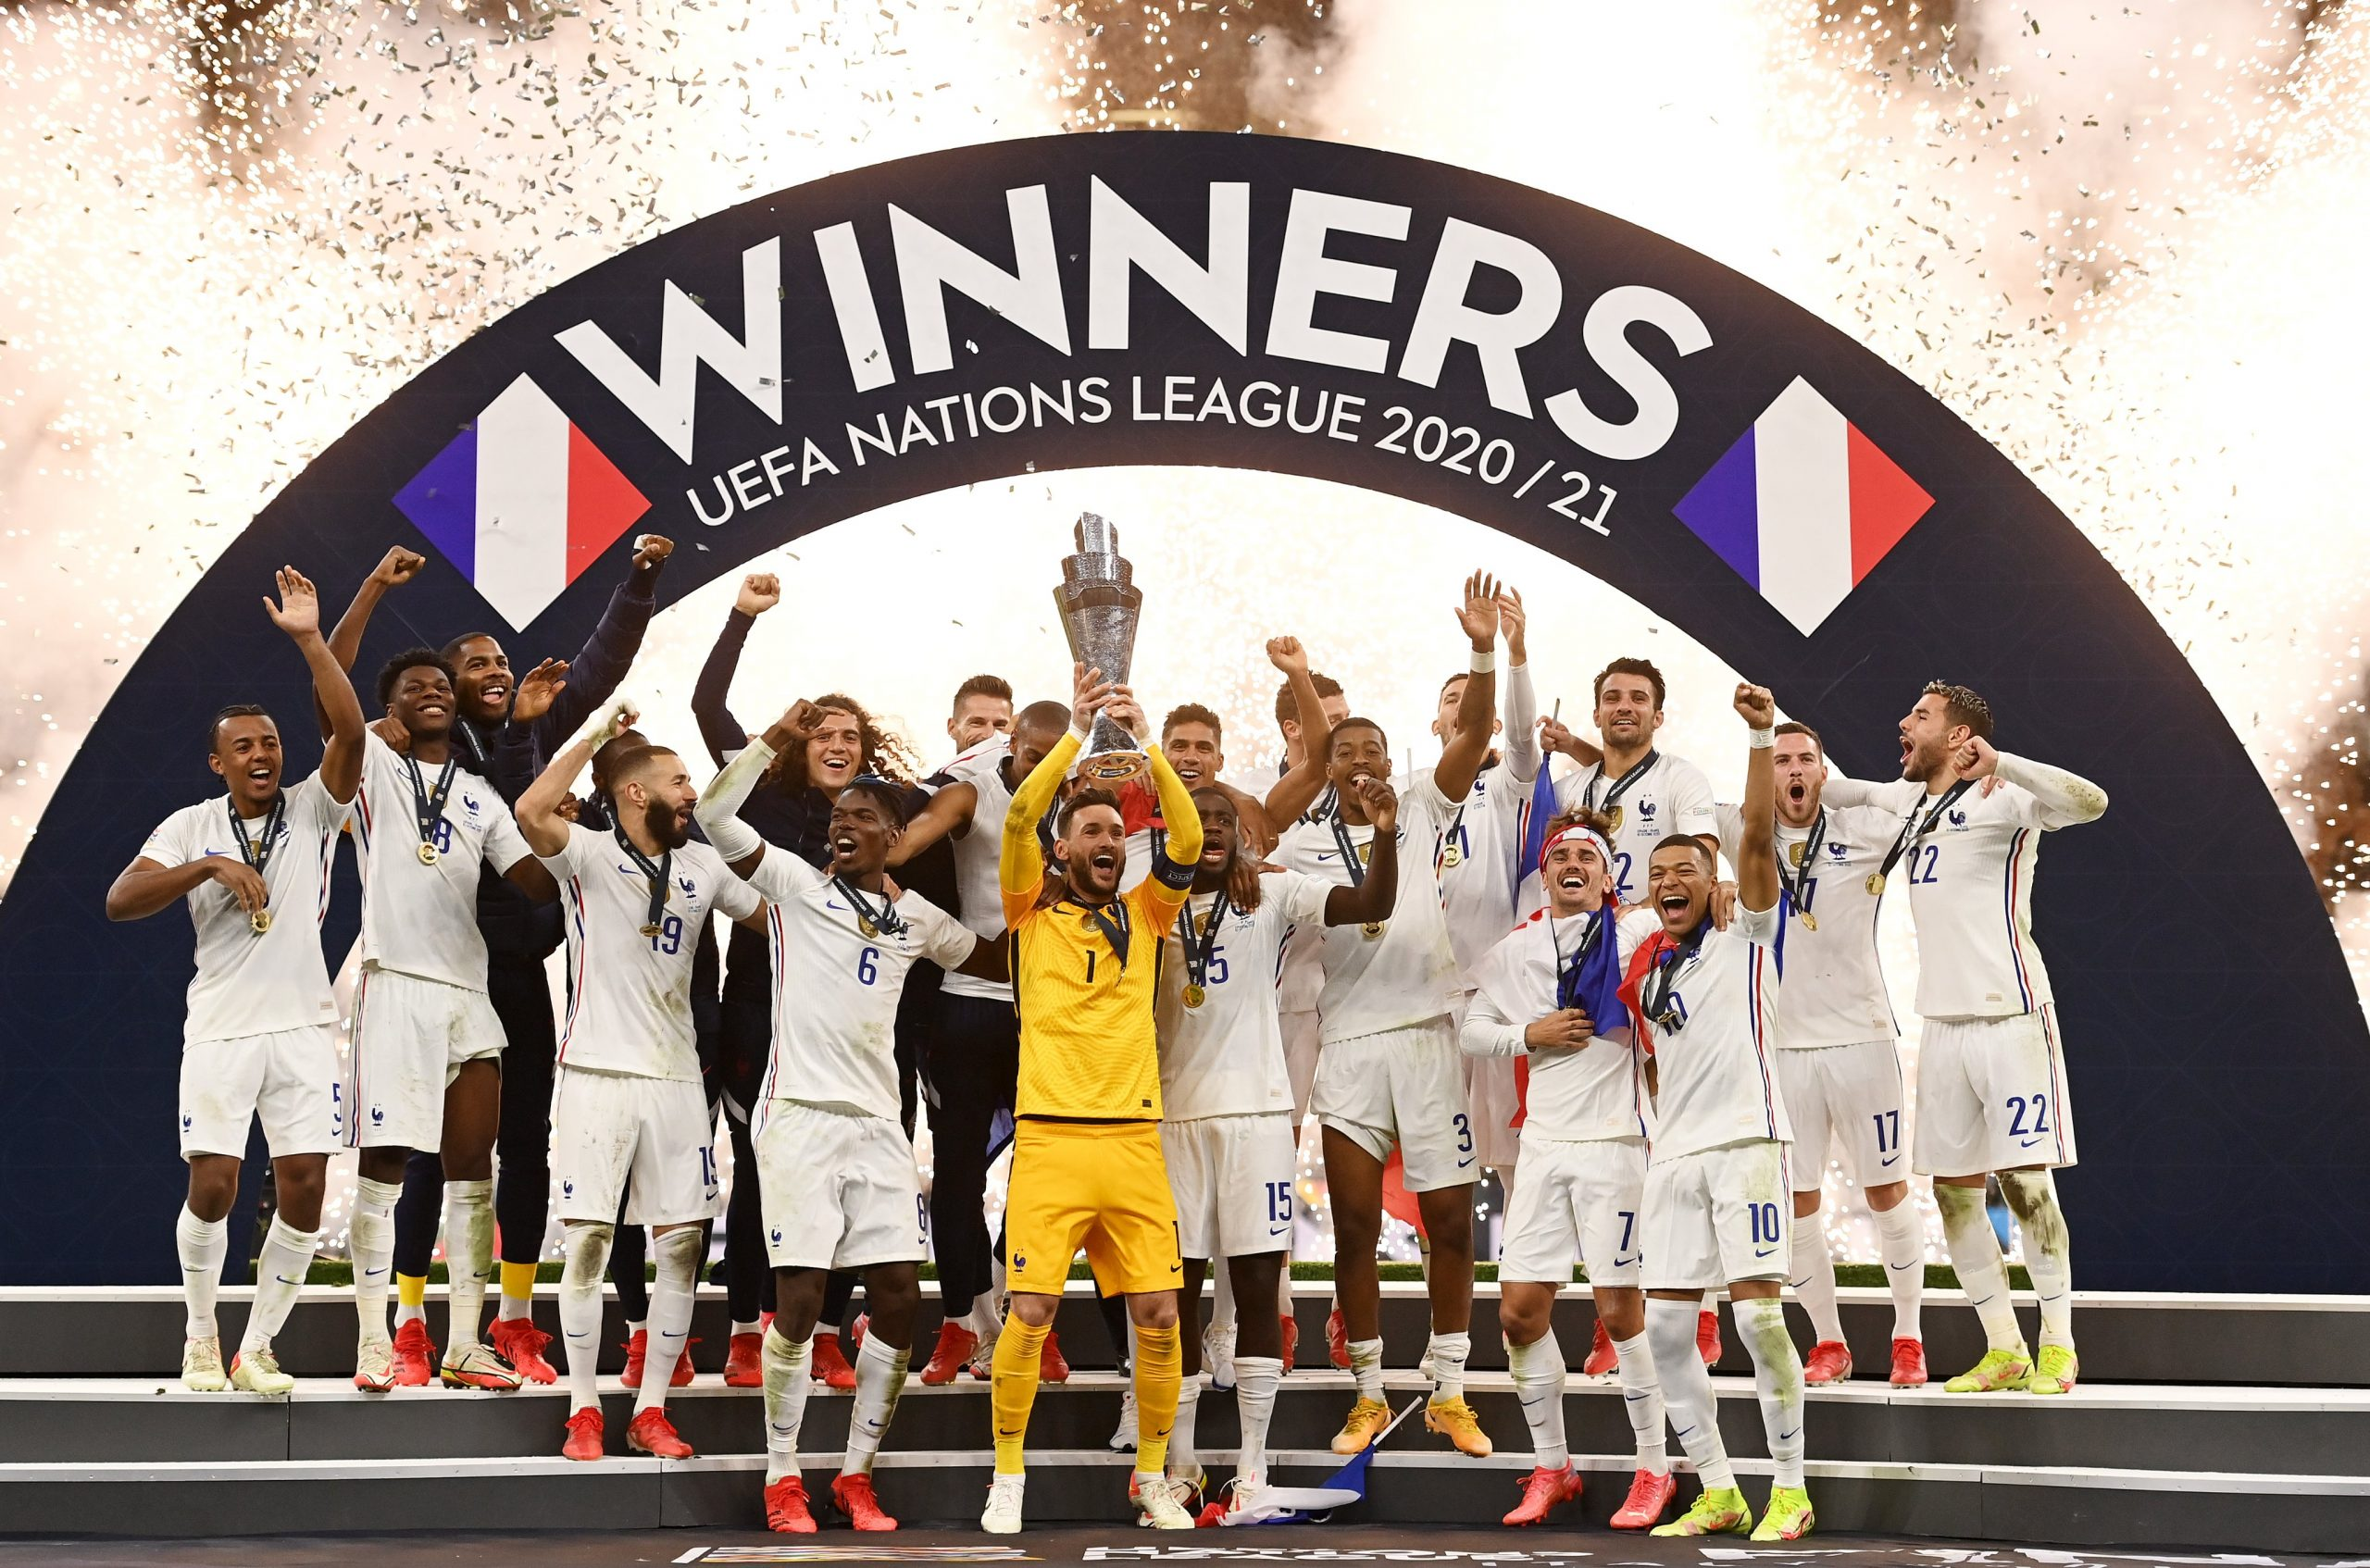 France Beat Spain to clinch the UEFA nations league